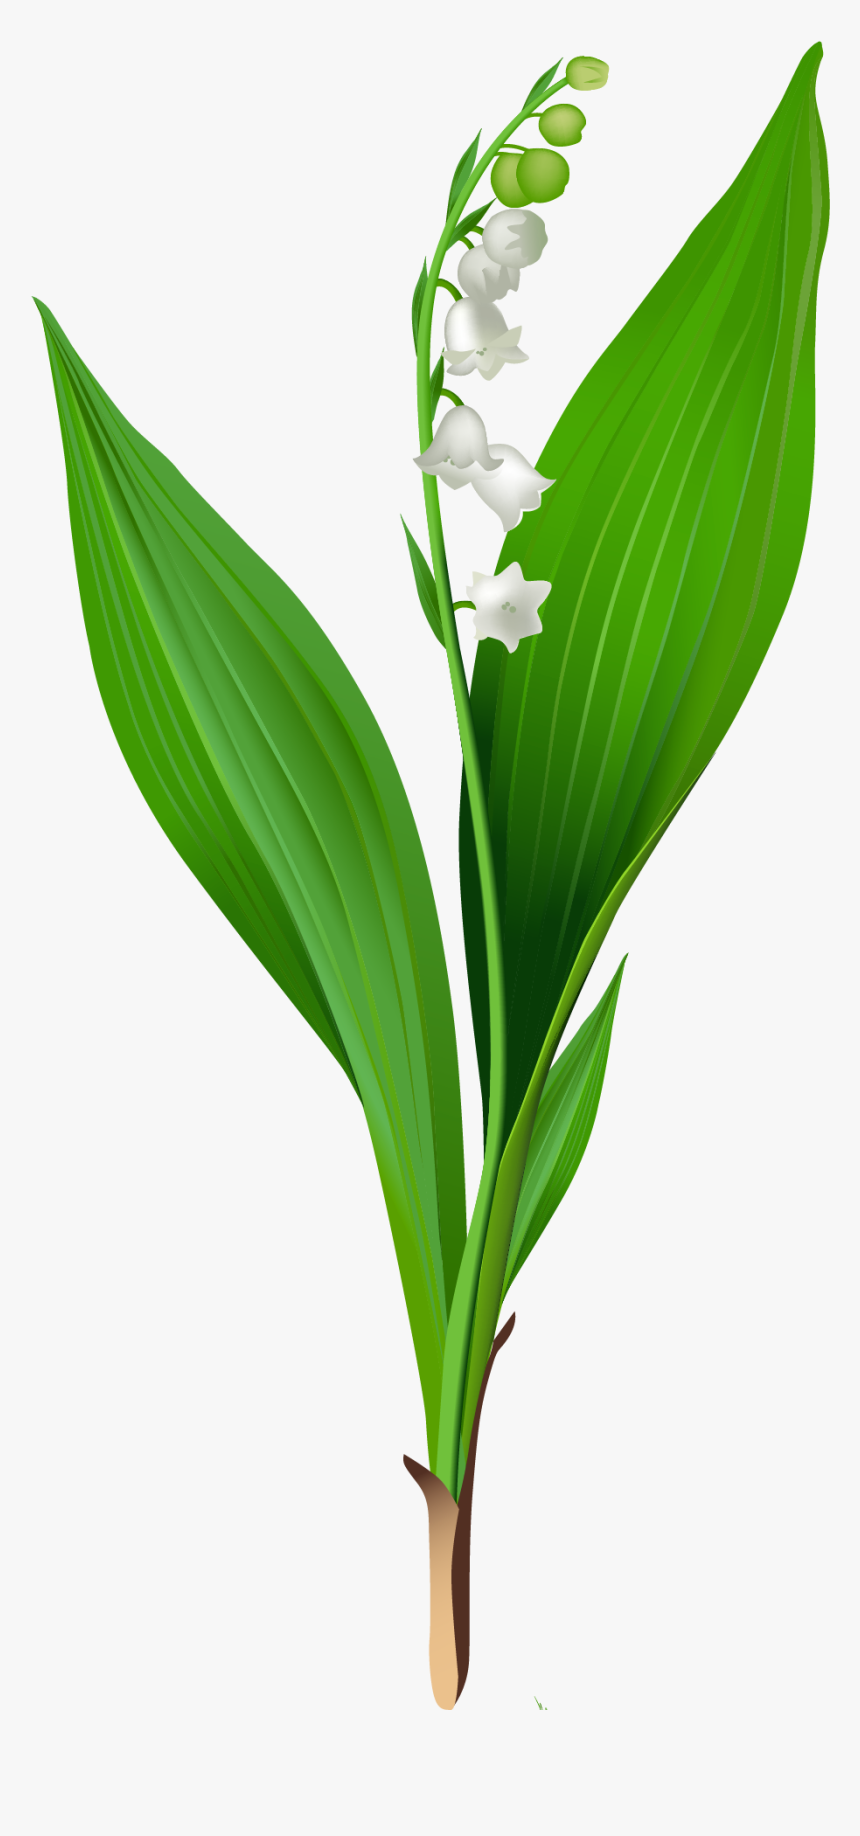 Lily Of The Valley Png, Transparent Png, Free Download